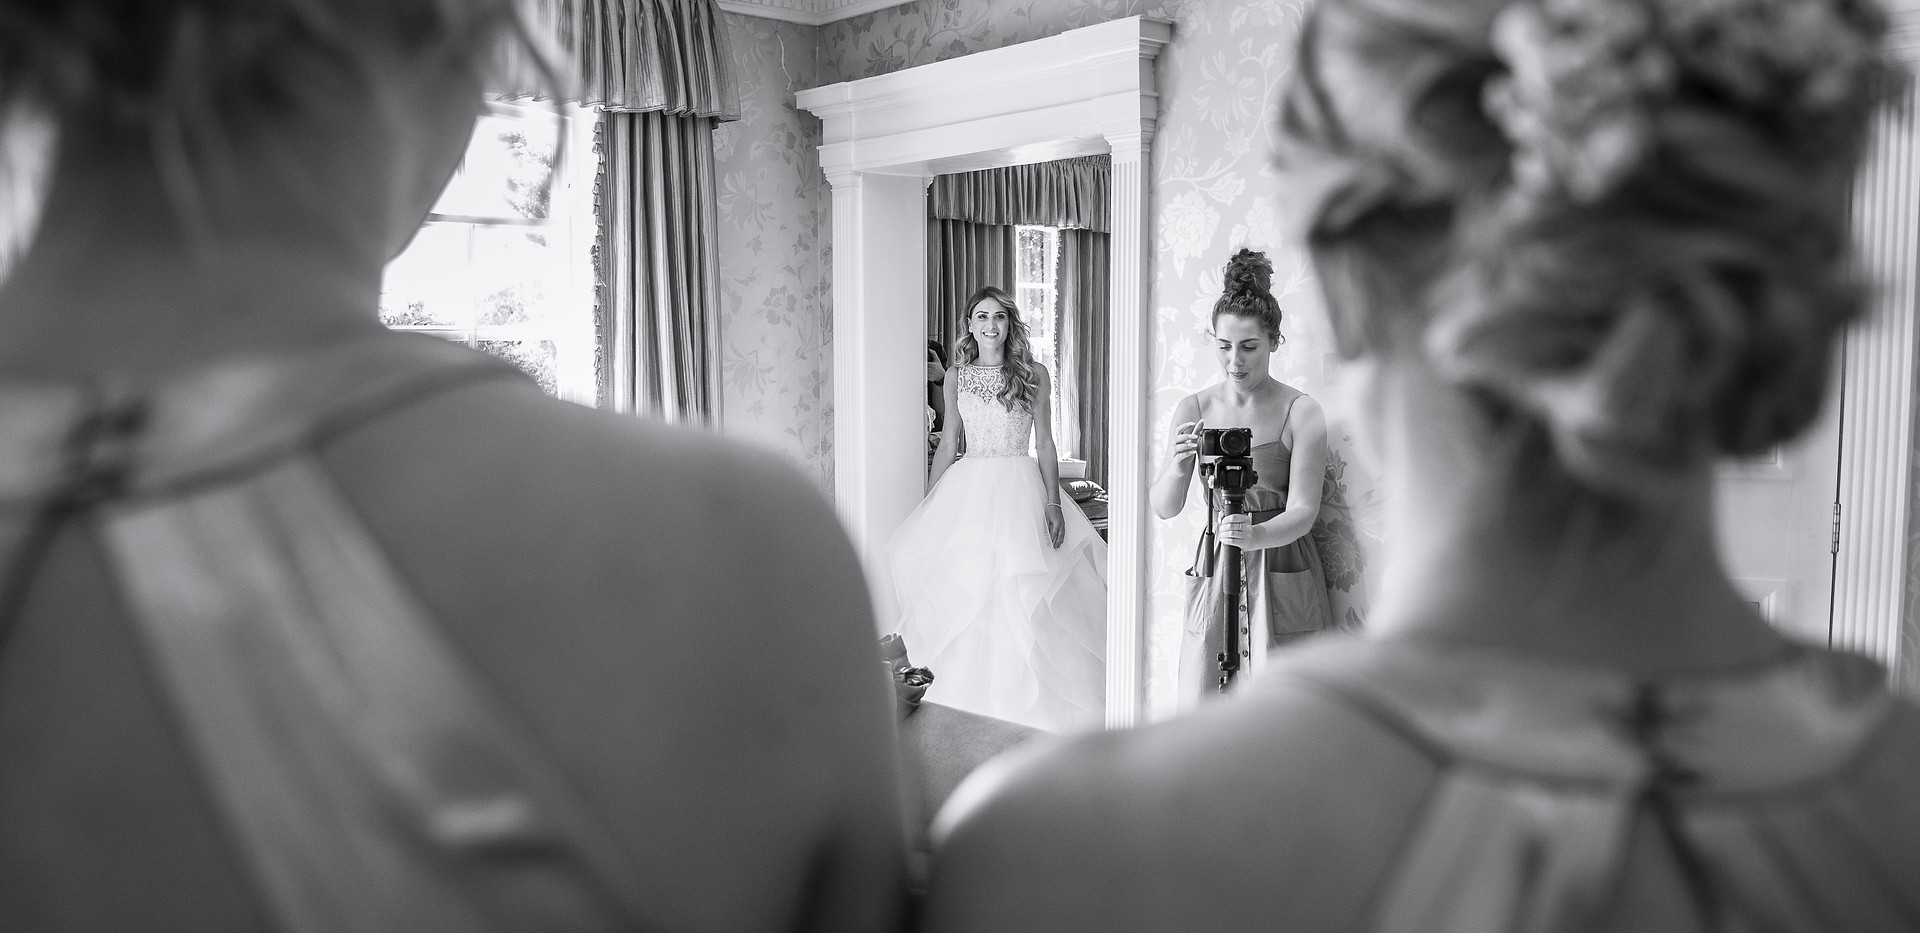 Delamere Manor Wedding Photography___13.